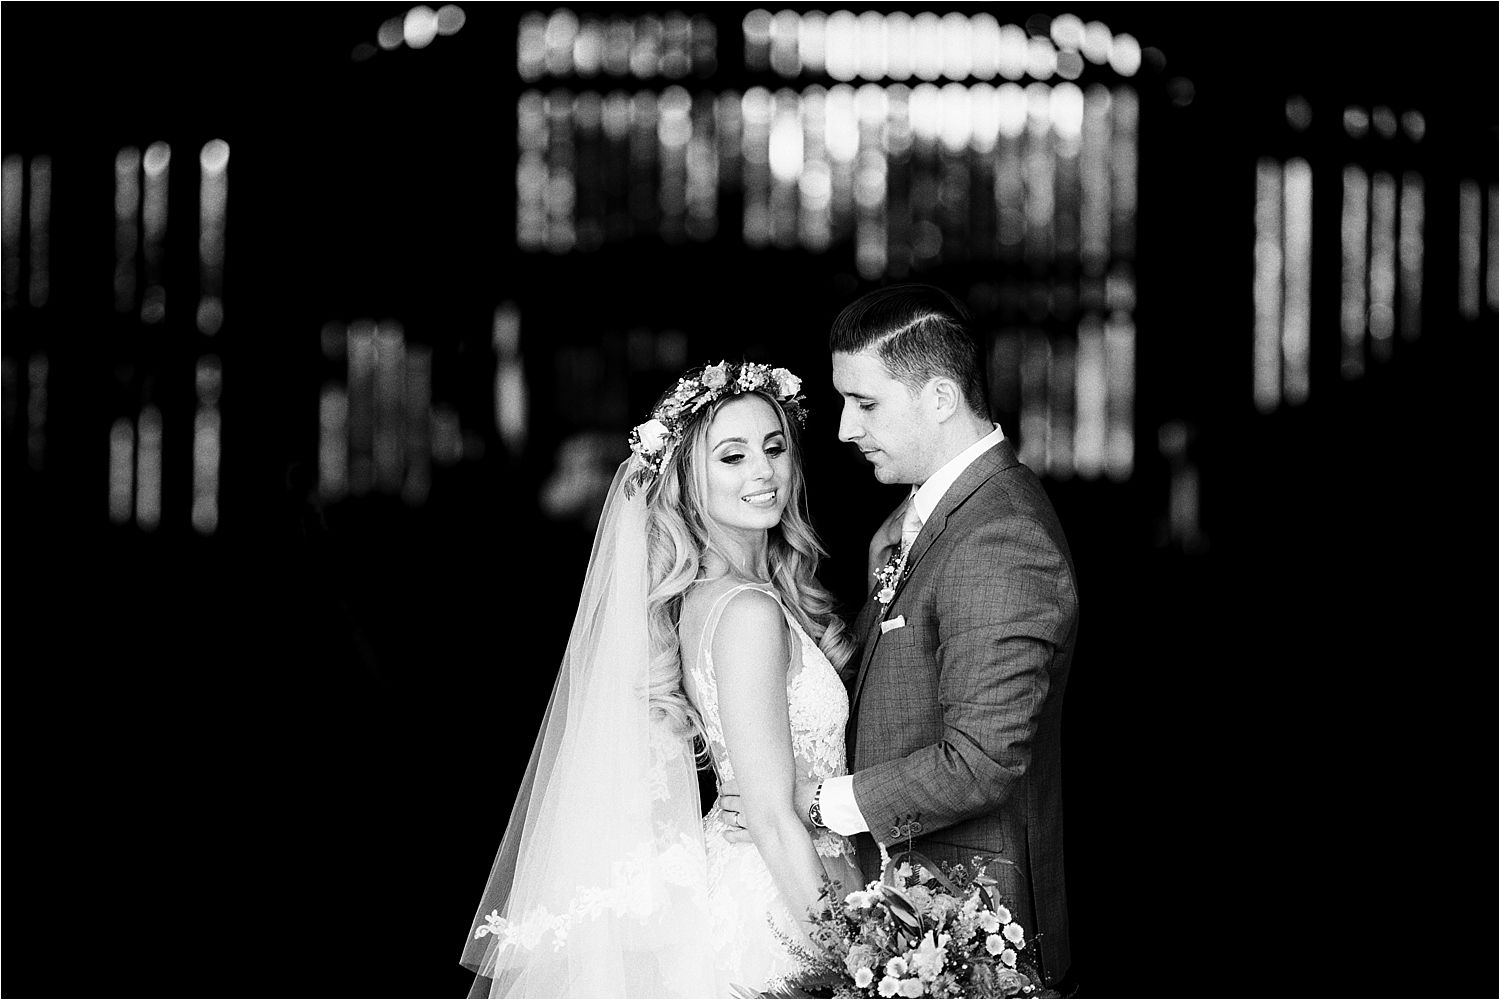 Black and white portrait of bride and groom at Cheshire wedding venue, Sandhole Oak Barn. Hair and Make Up by Lizzie Griffiths